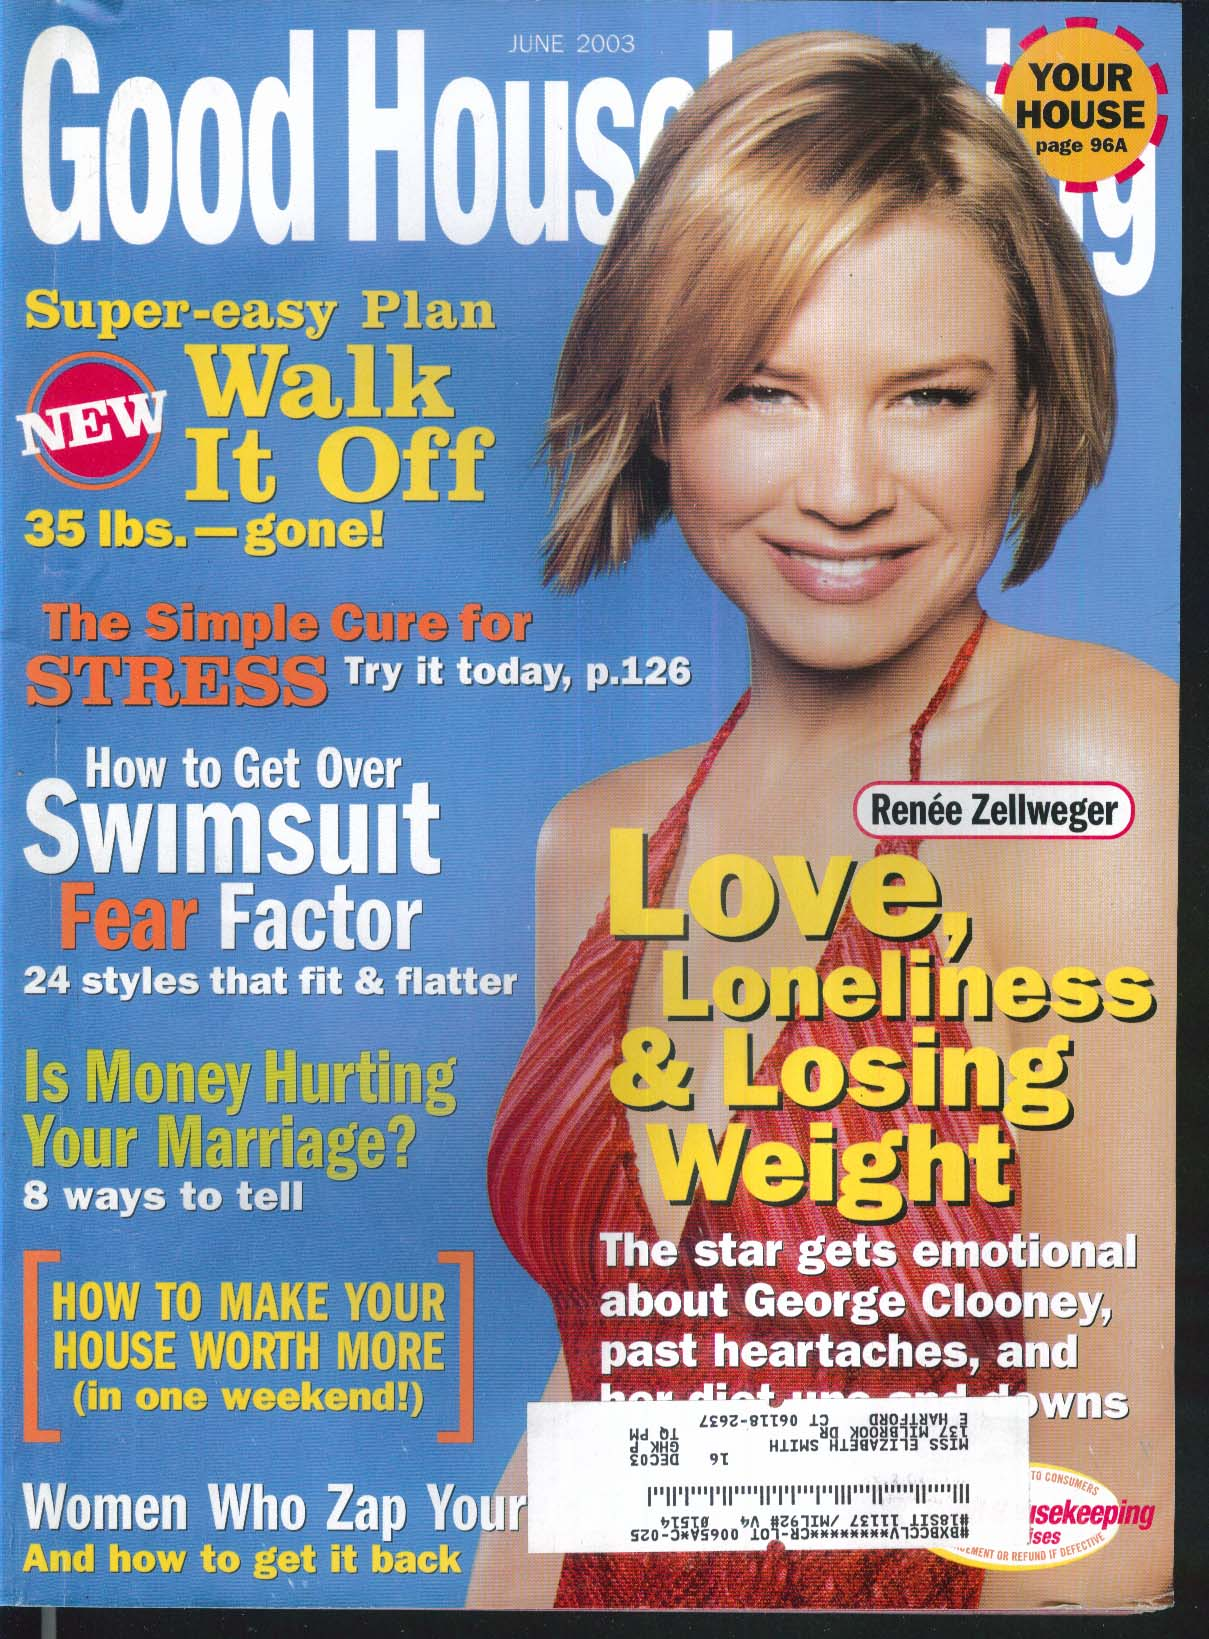 GOOD HOUSEKEEPING Renee Zellweger George Clooney William Petersen + 6 2003